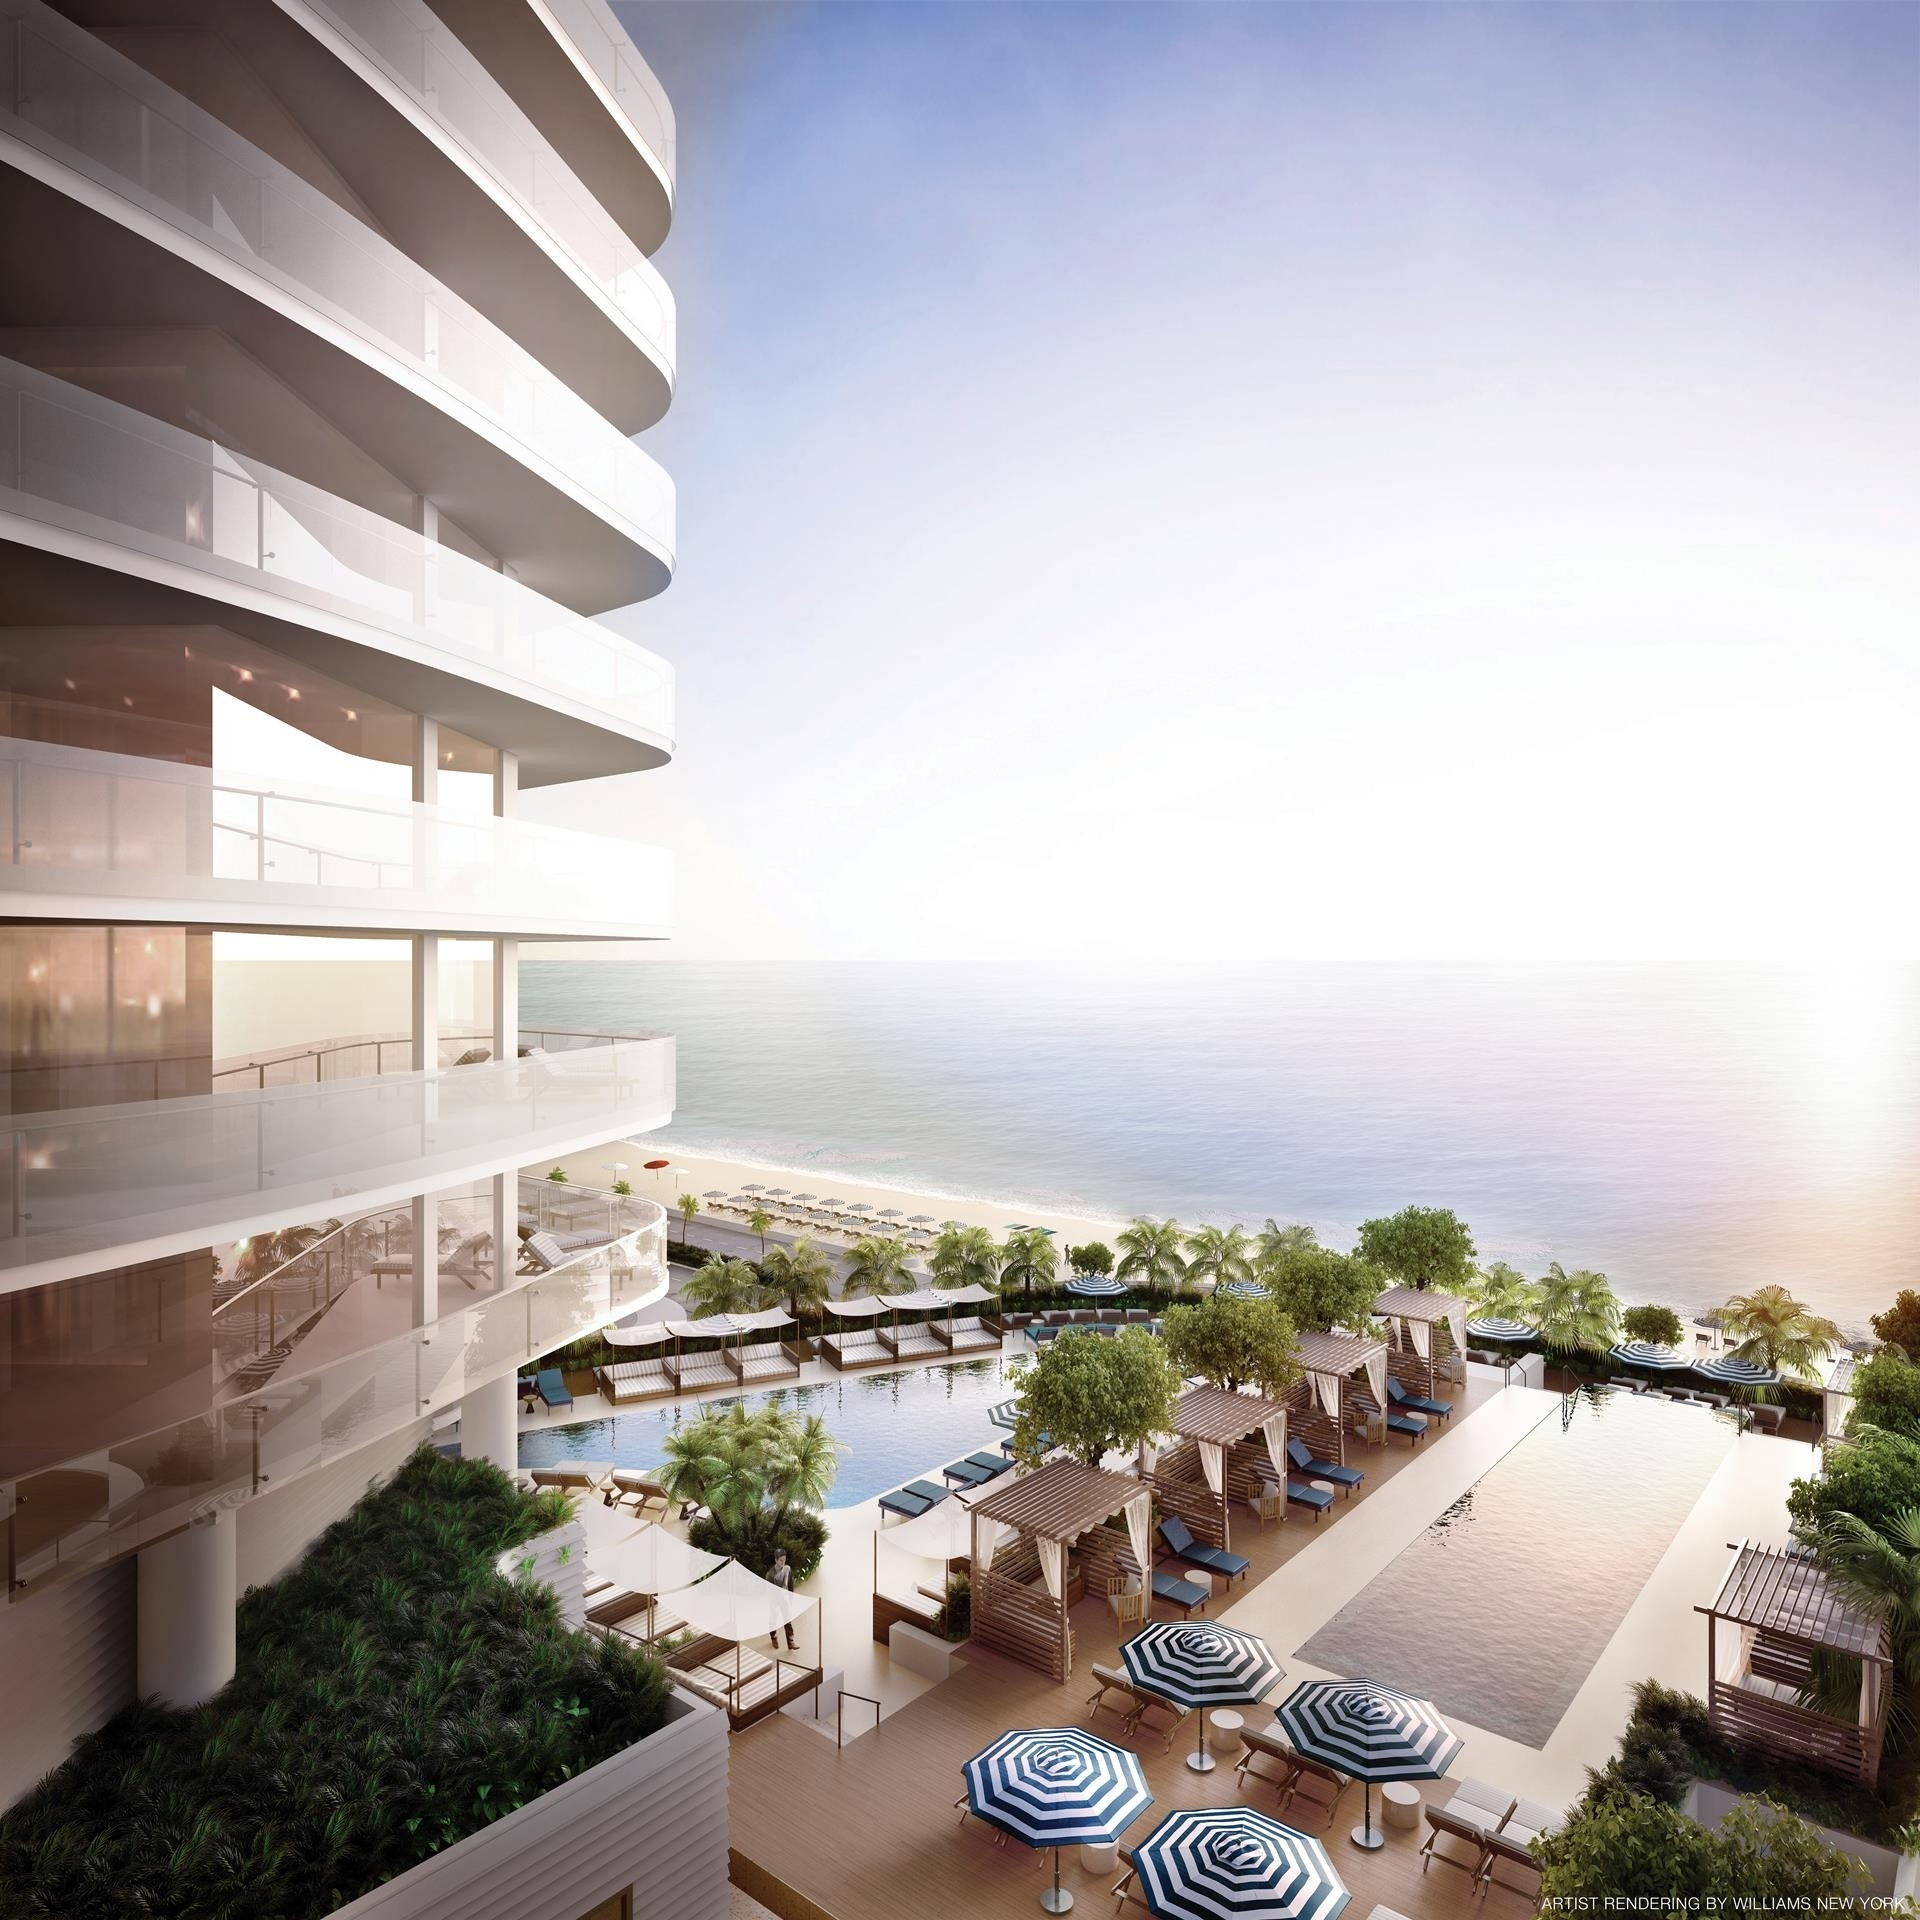 Condominium for Sale at 525 N Ft Lauderdale Bch Bl , 2202 Central Beach, Fort Lauderdale, FL 33304